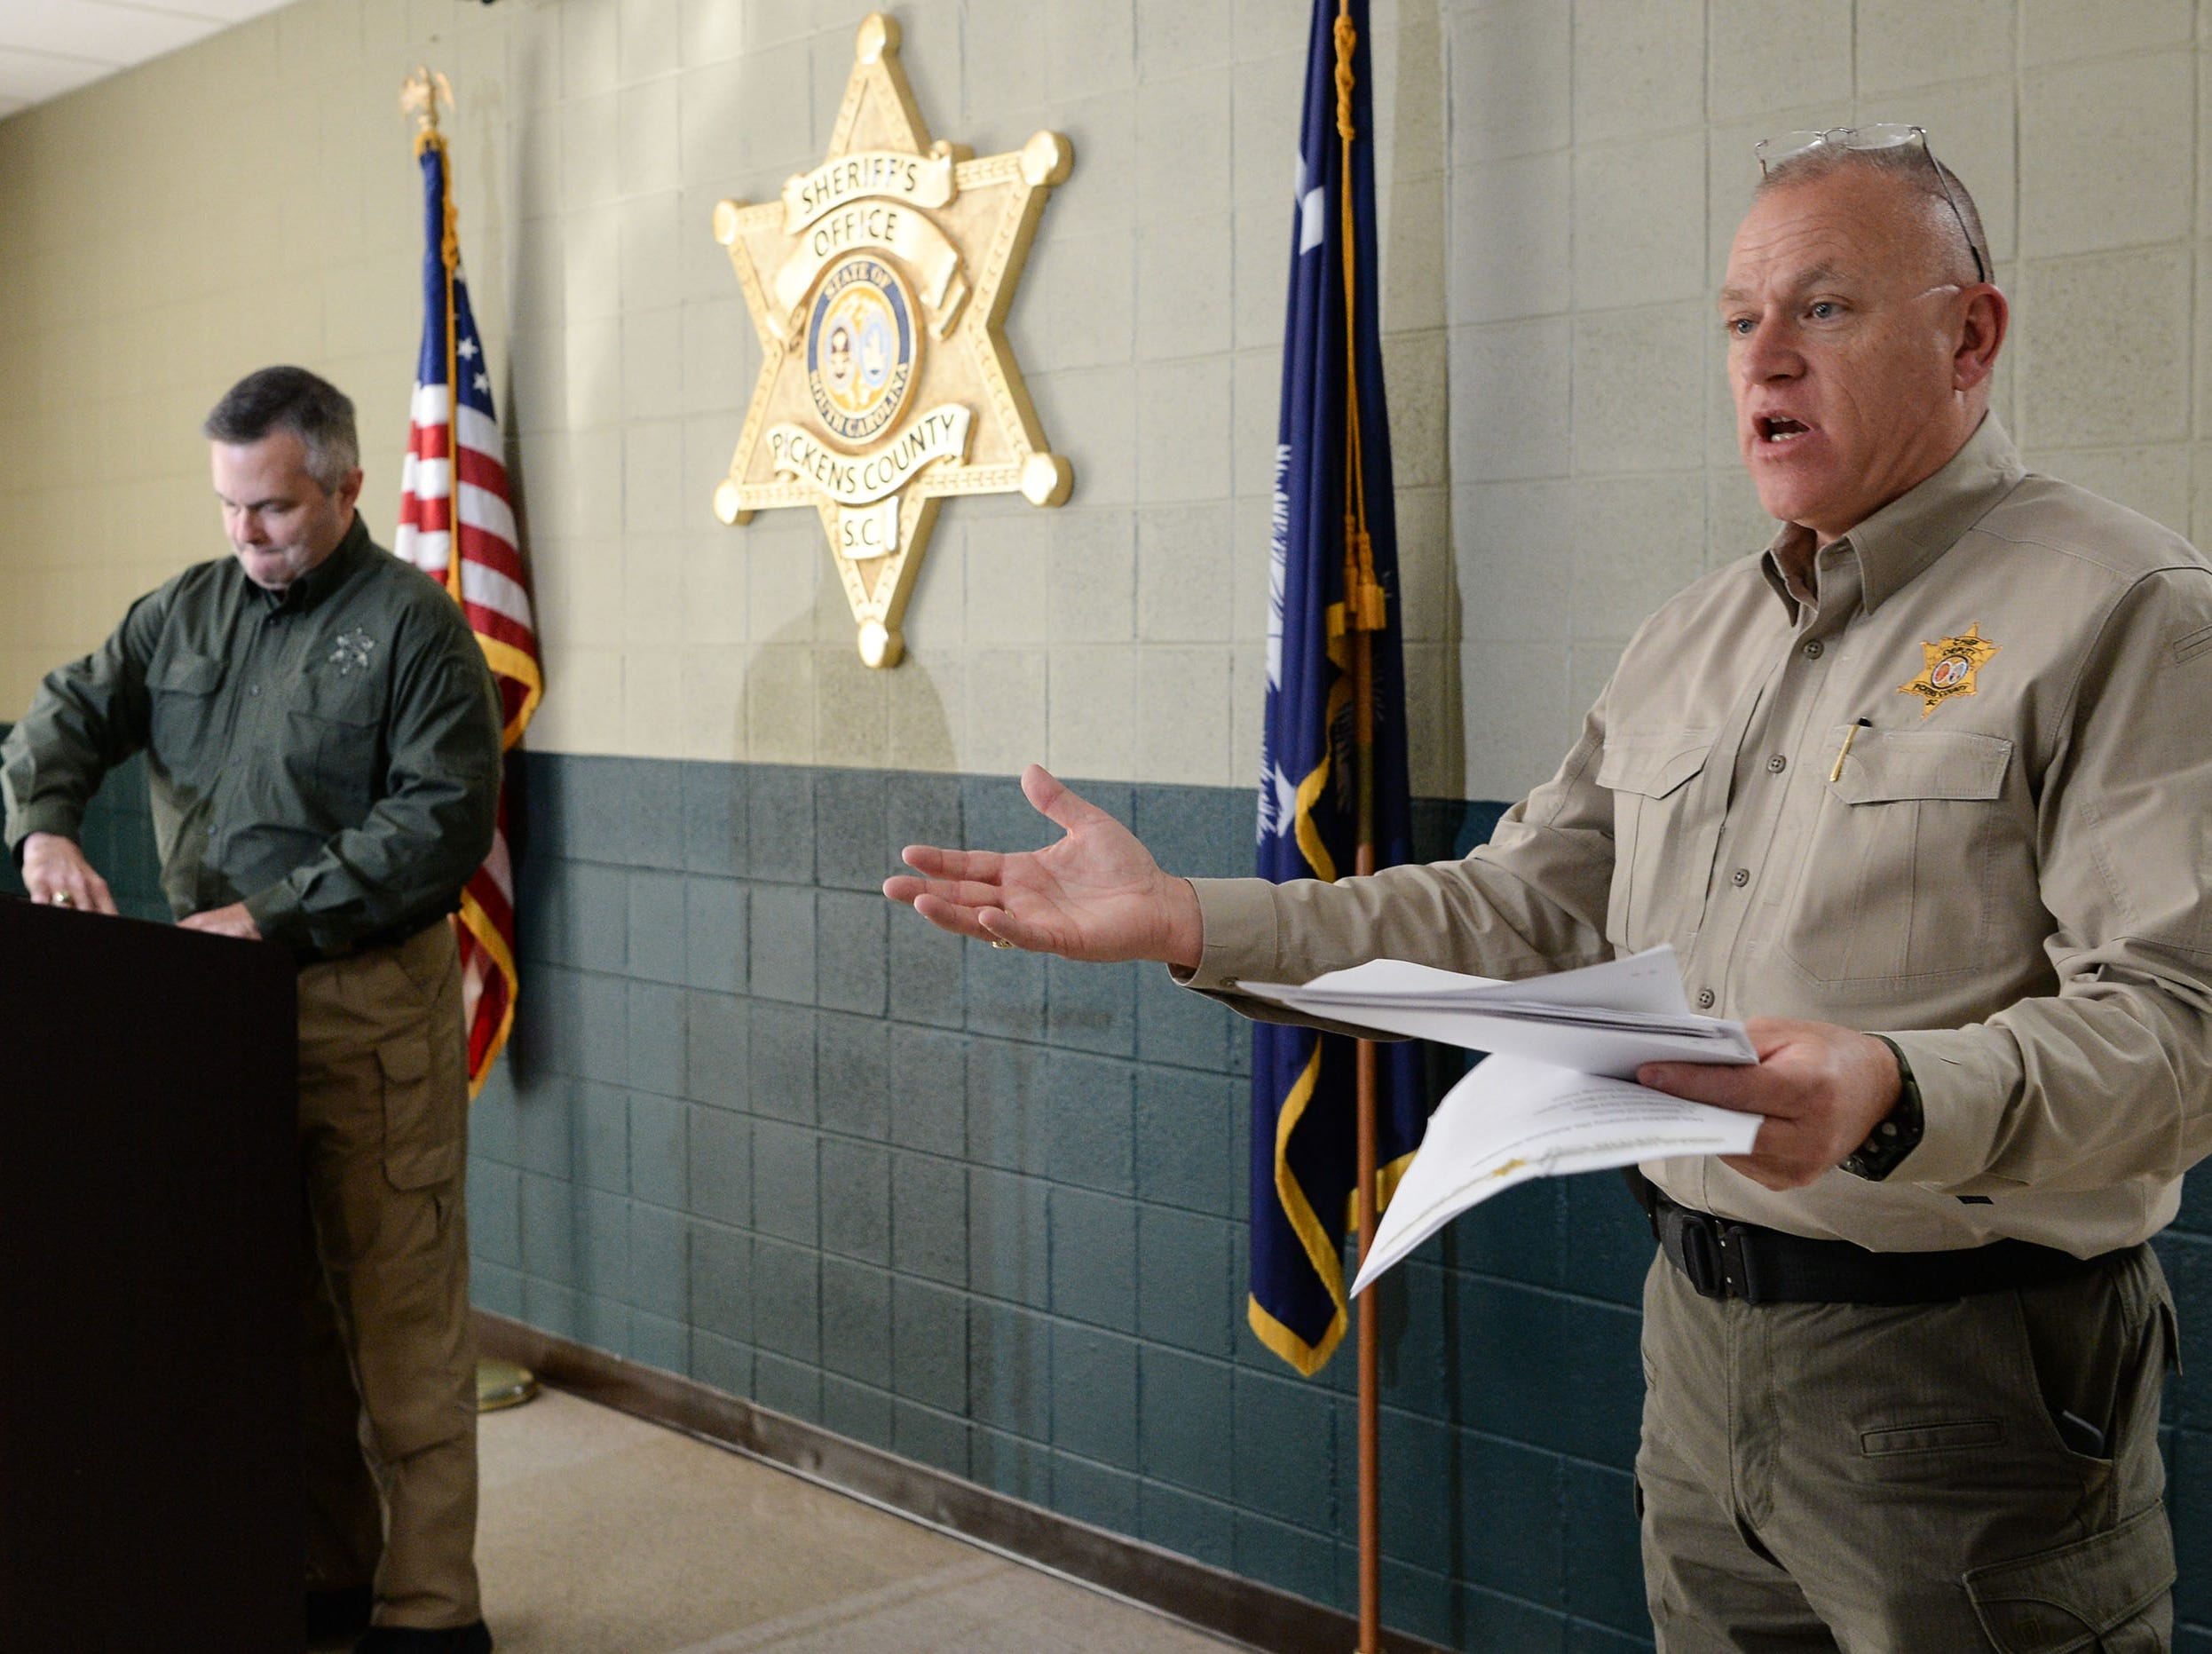 Pickens County Sheriff Office Chief Deputy Creed Has he, right, speaks as Sheriff Rick Clark gets ready to speak to media about two inmates who escaped from the Pickens County Detention Center early Tuesday morning.